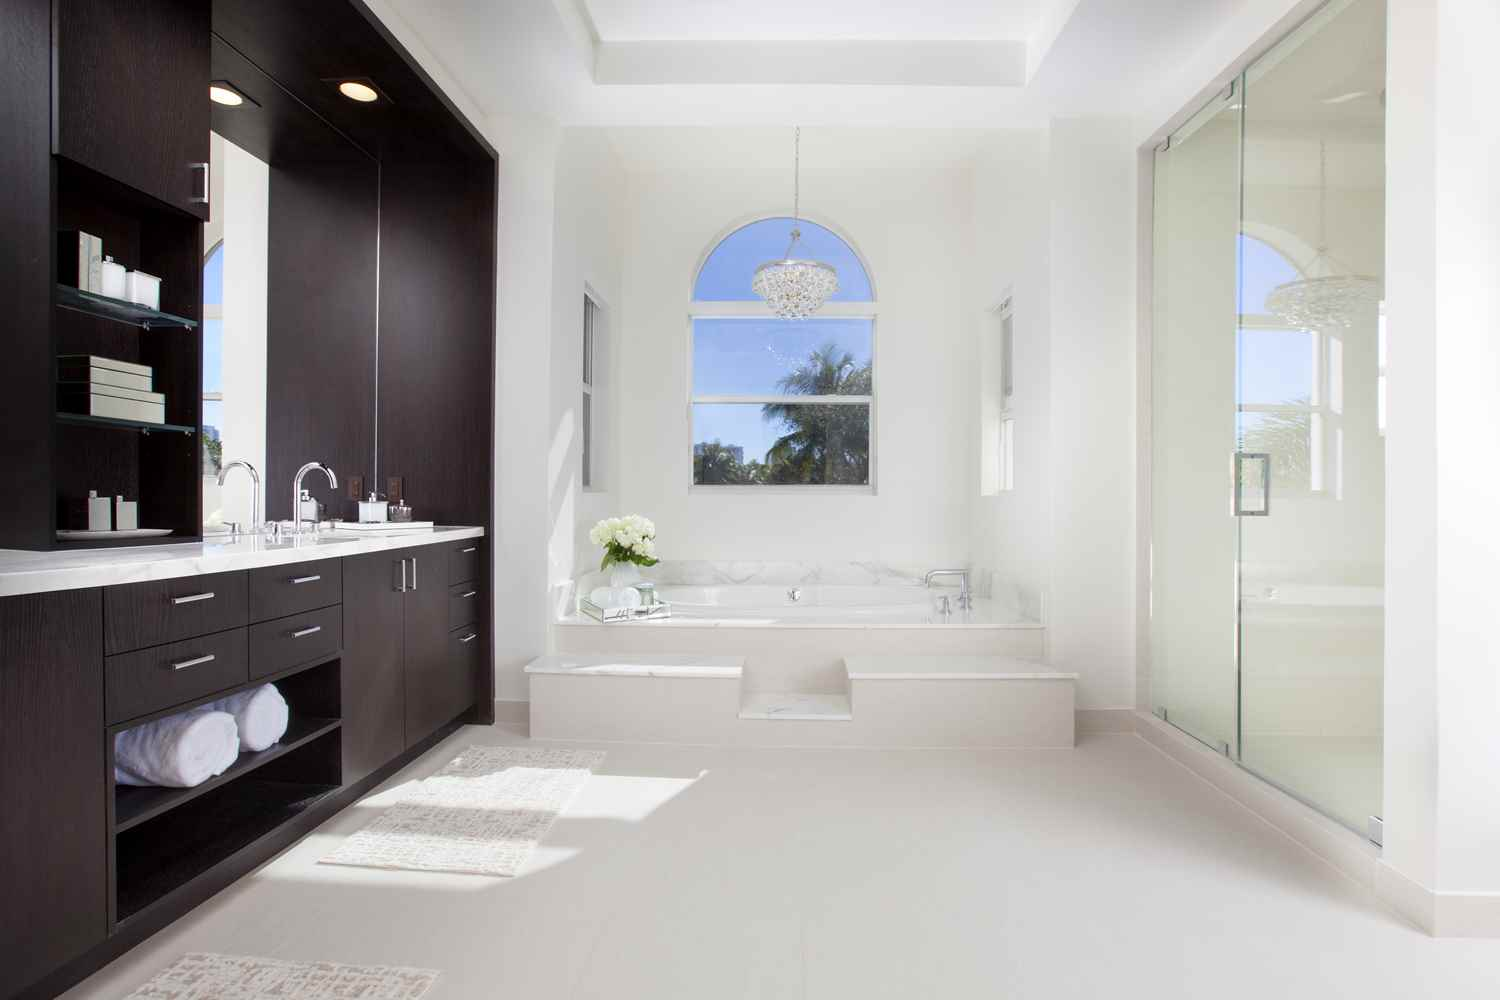 Bathroom Design Ideas - Residential Interior Design From DKOR Interiors